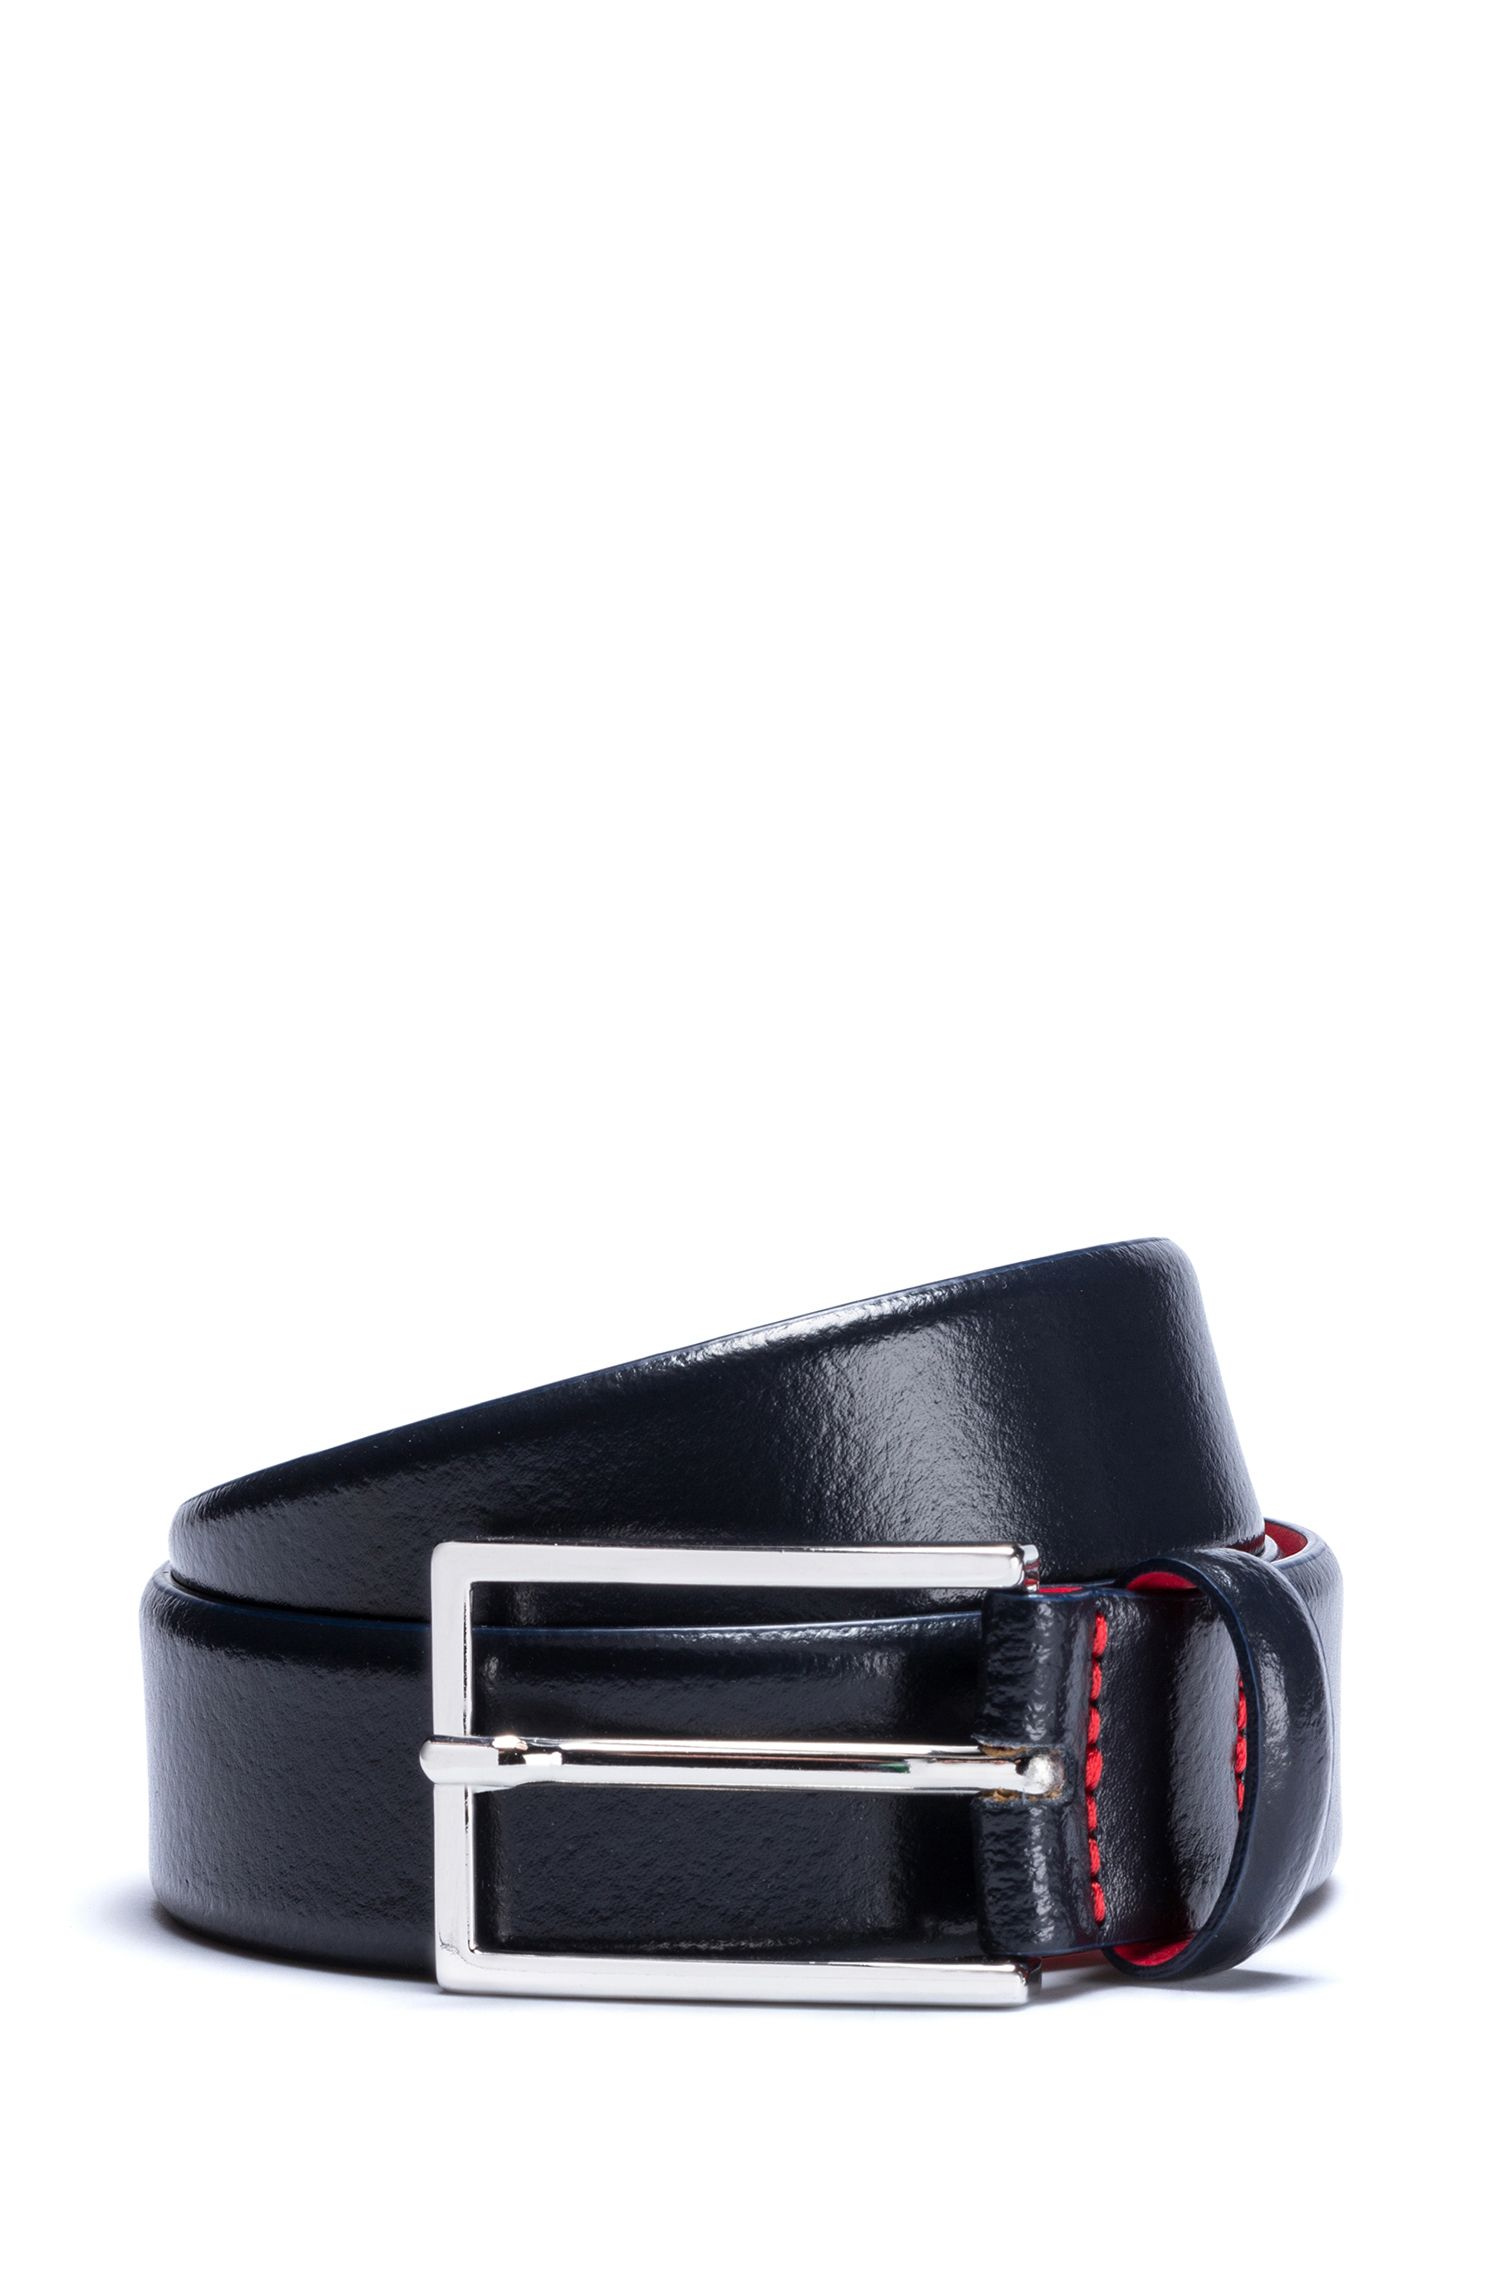 Italian Leather Contrast Belt | Gavrilo BL, Dark Blue